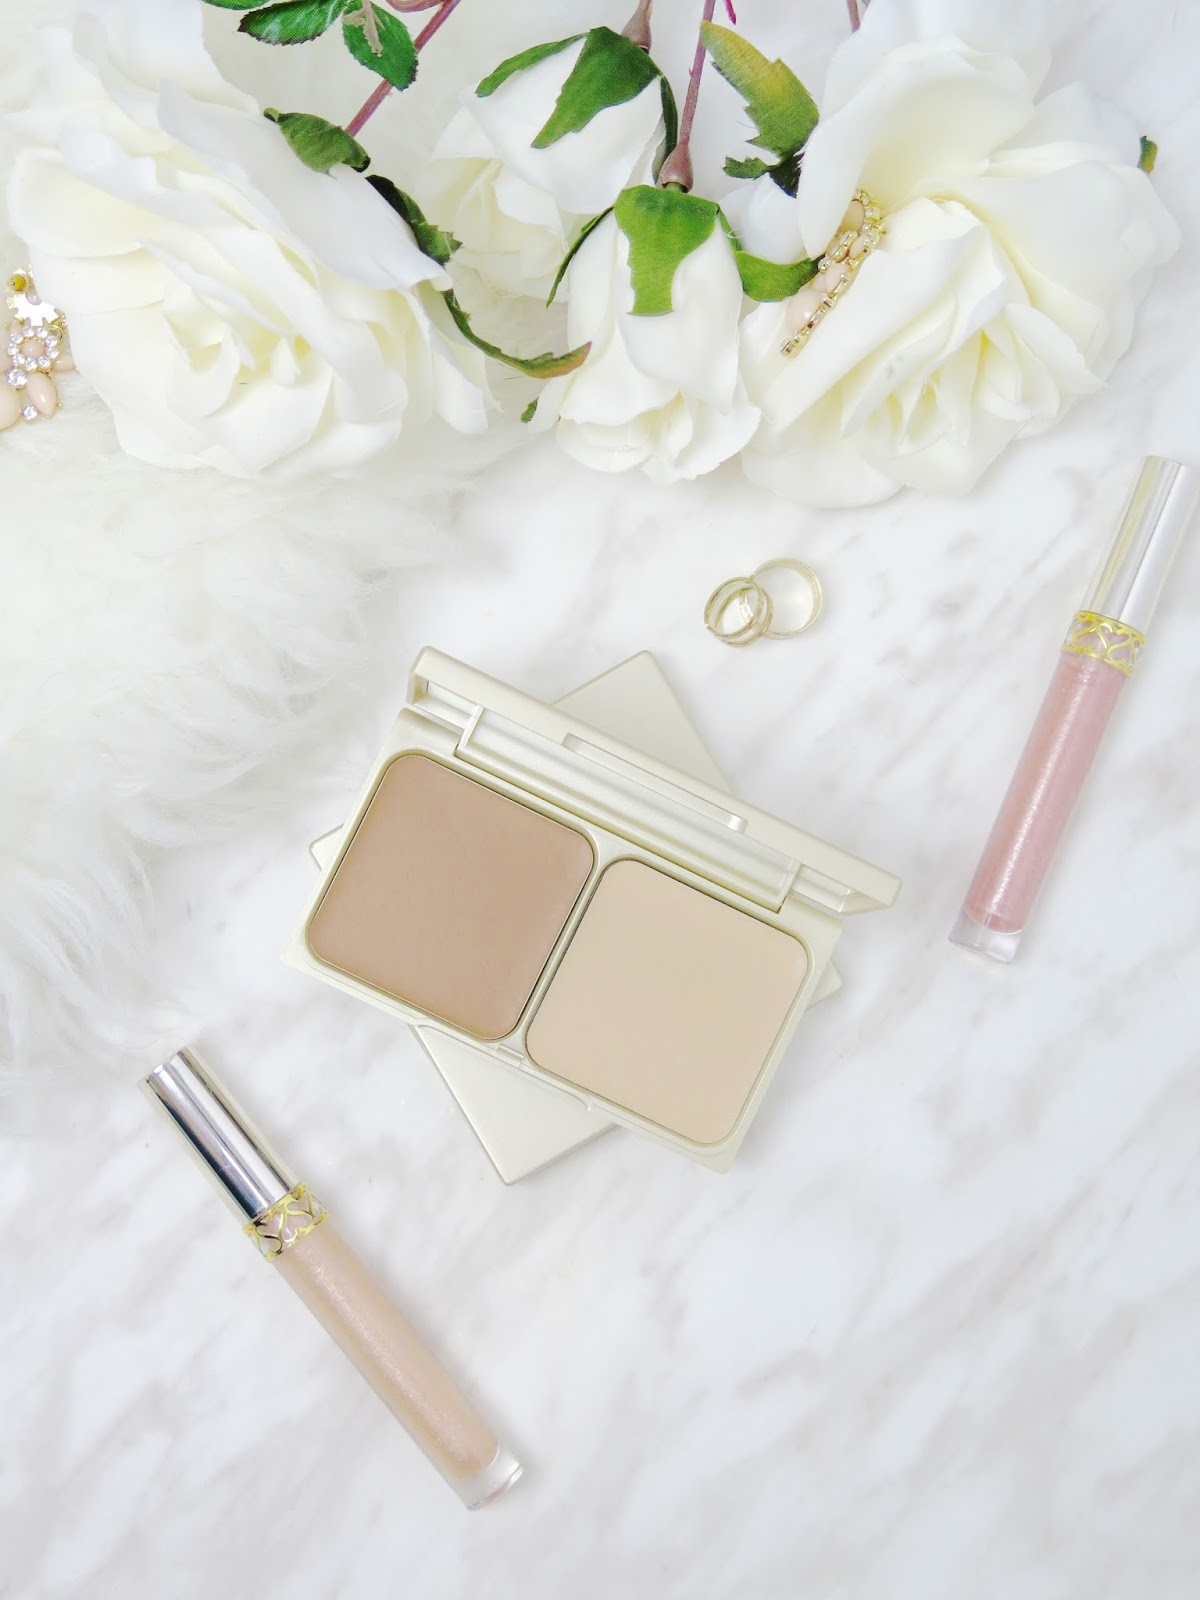 Cream Contouring With Stila's Shape & Shade Contour Duo | Natural Sculpted Contouring Made Easy | labellesirene.ca